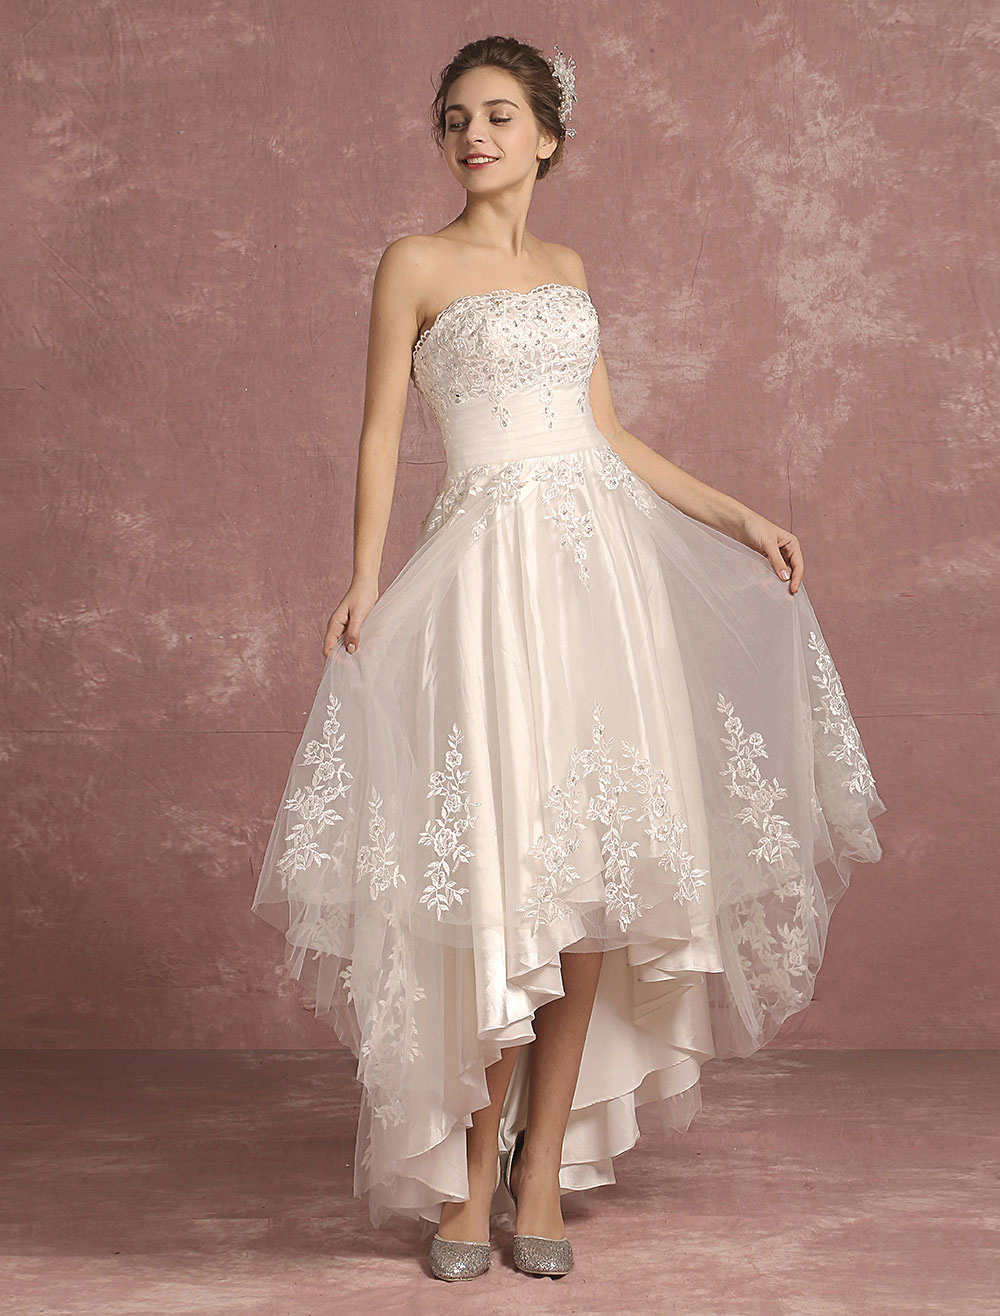 Wholesale Cheap Strapless Wedding Dresses, Discount Bridal Gowns |  Milanoo.com